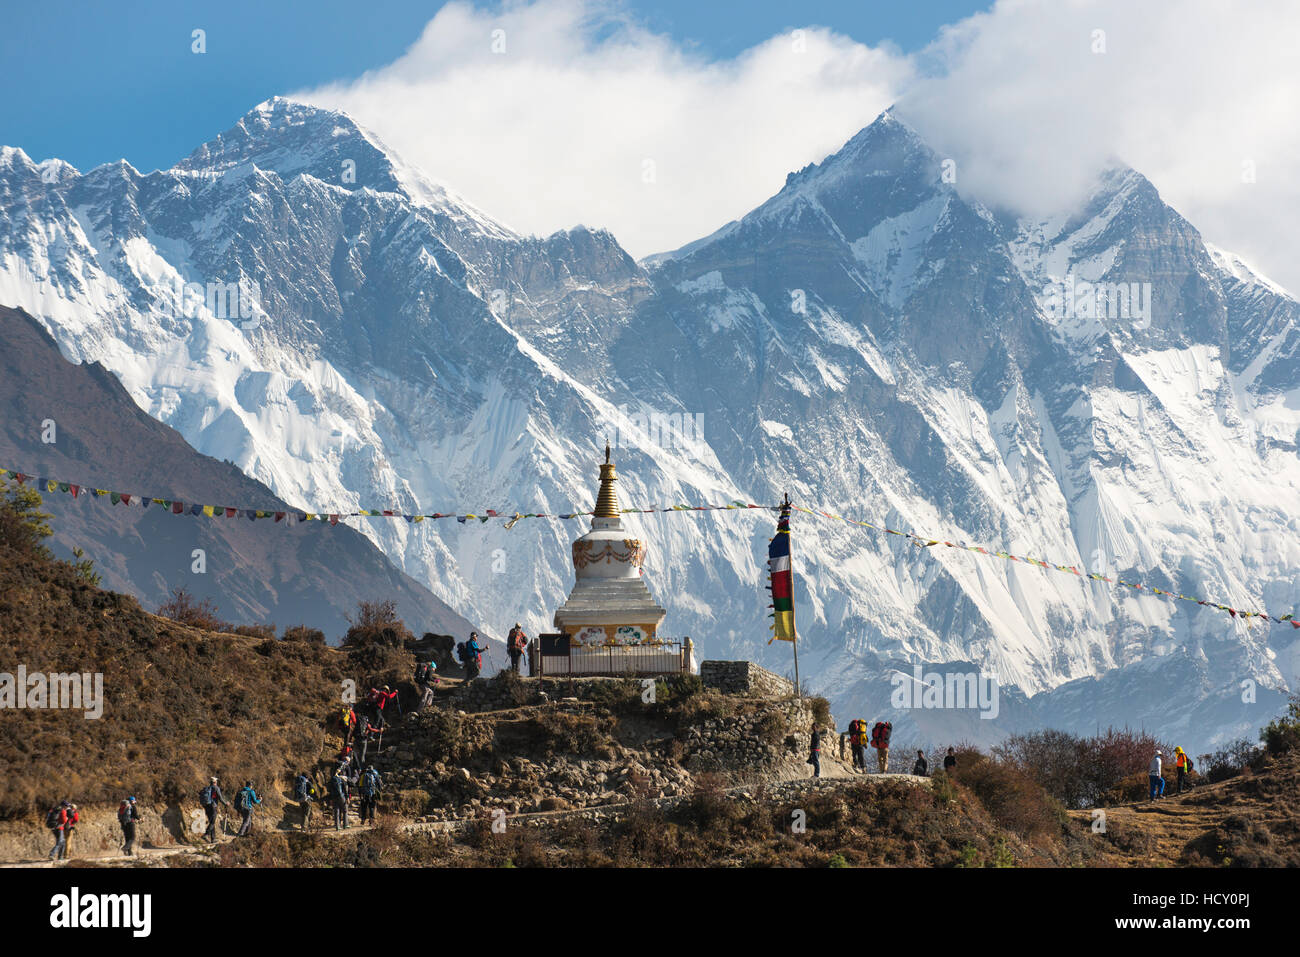 Hoards of trekkers make their way to Everest Base Camp, Mount Everest is the peak on the left, Khumbu Region, Nepal - Stock Image